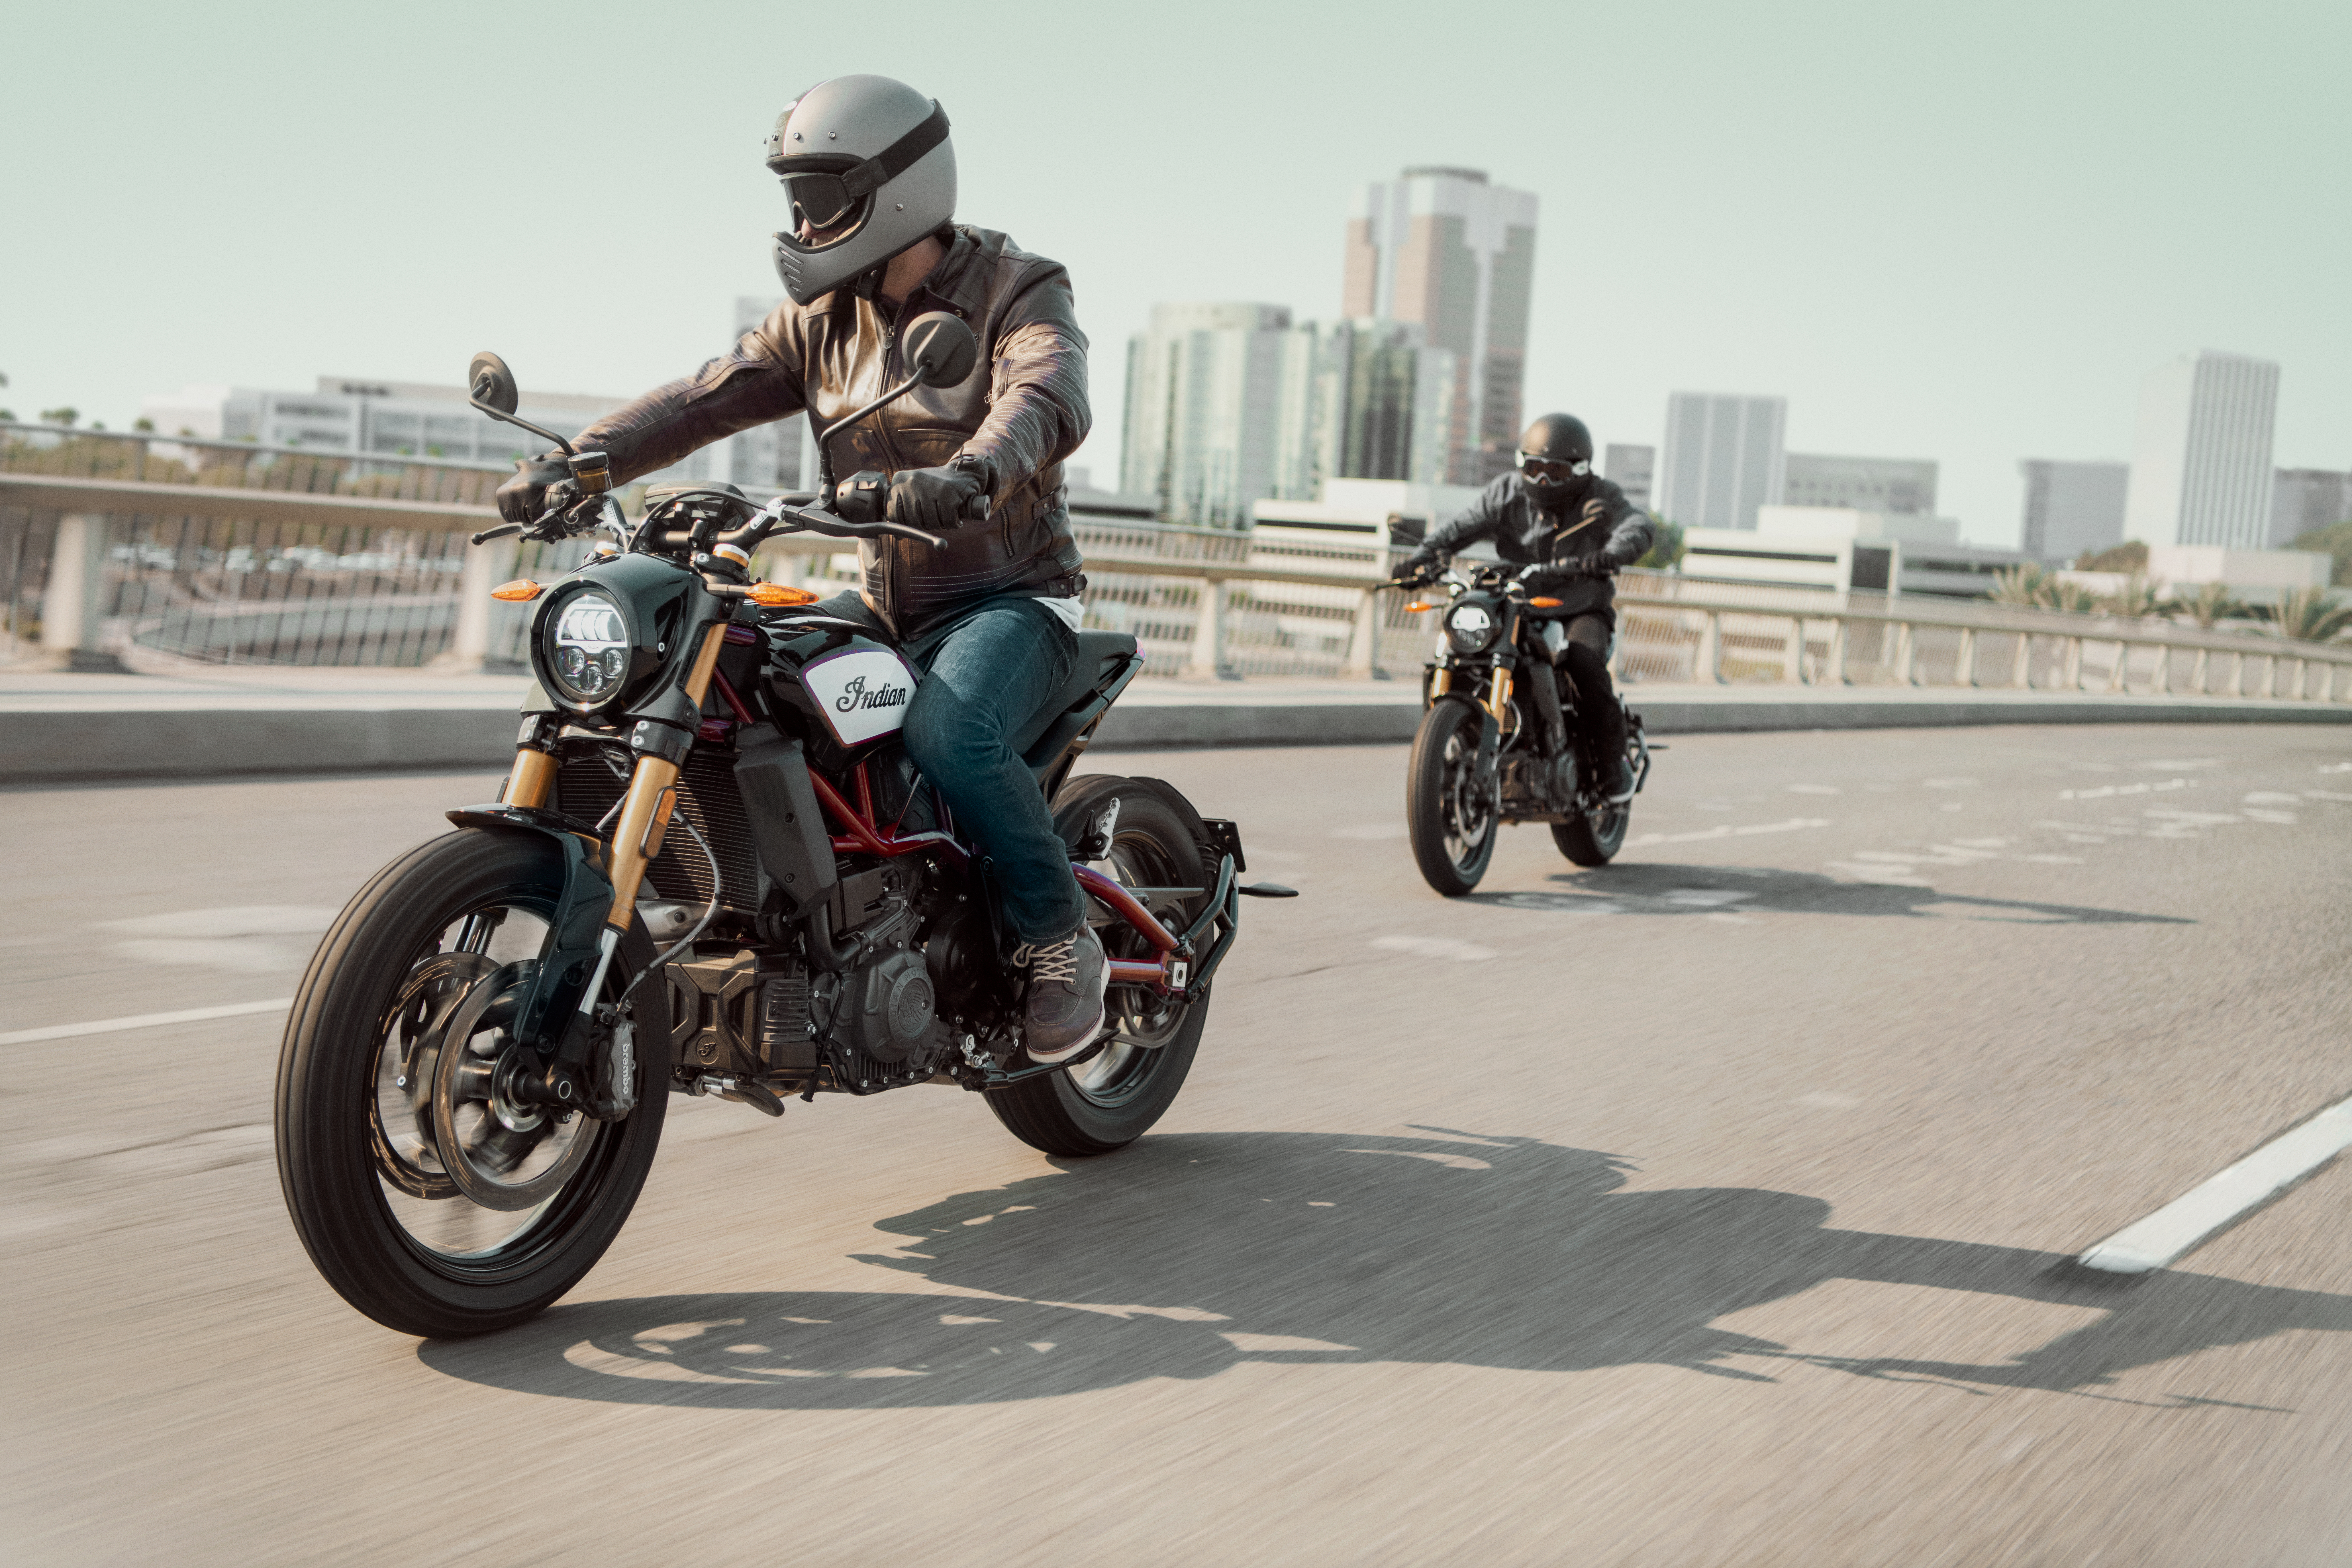 At last, Indian unveils the FTR1200 flat tracker for the